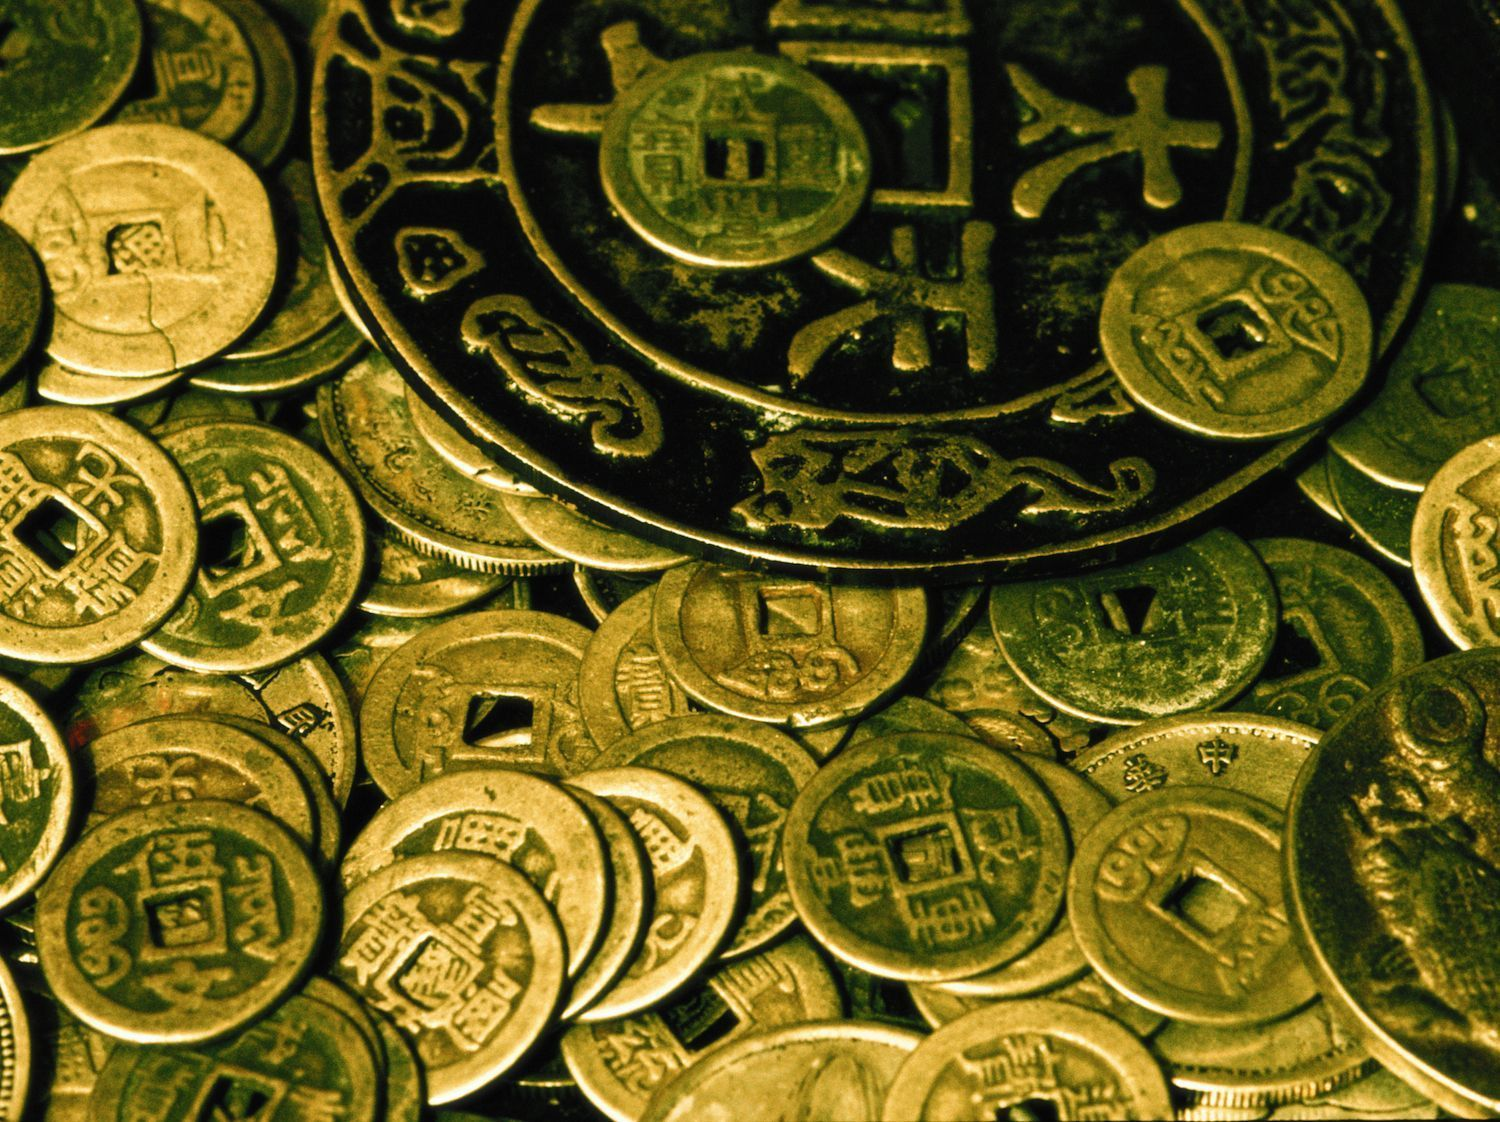 How to choose chinese coins for feng shui money cures feng shui how to choose chinese coins for feng shui money cures reviewsmspy